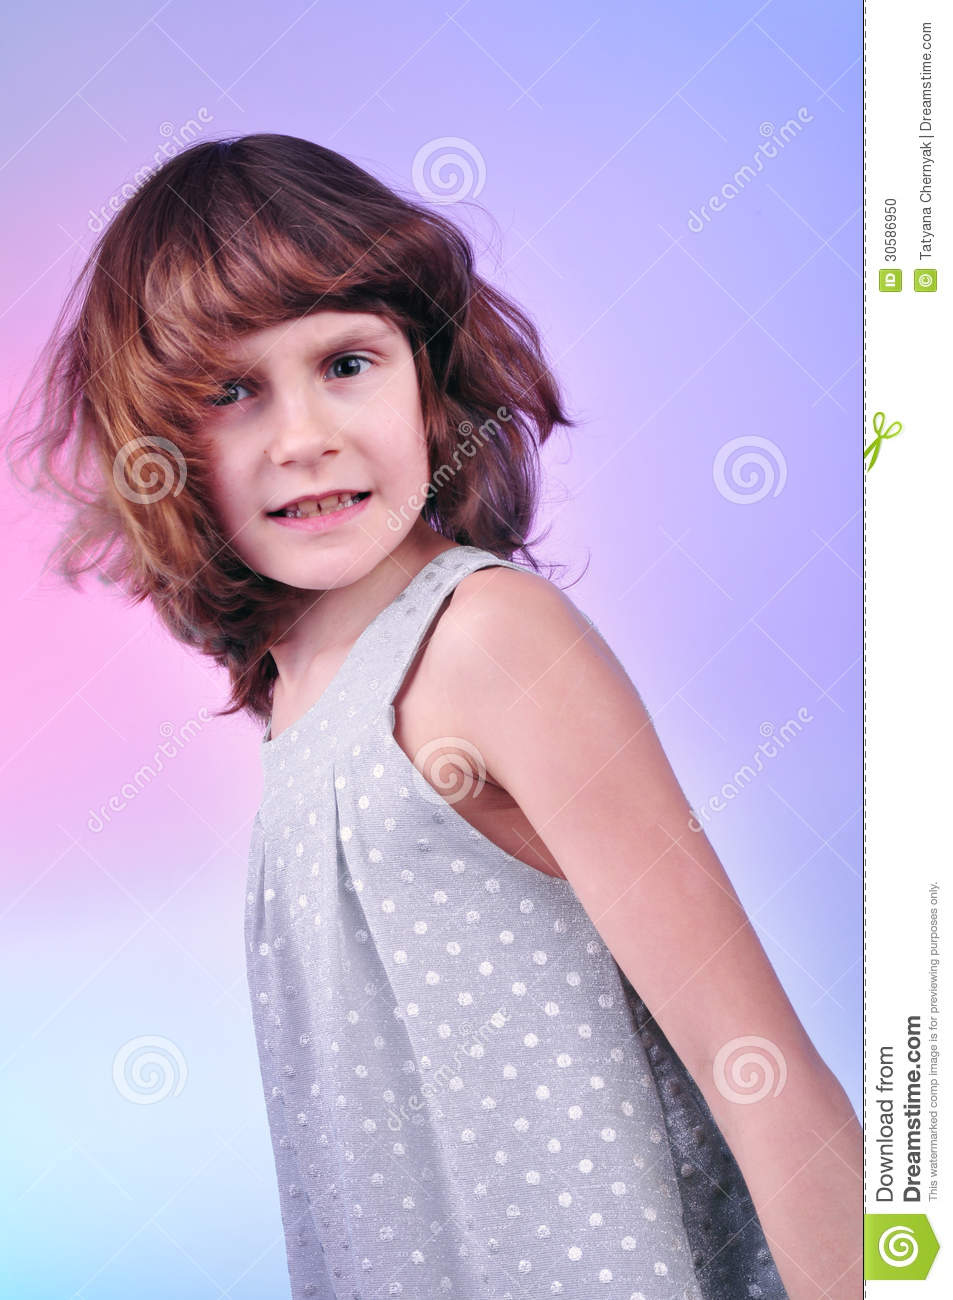 Pretty 8 Year Old Girl In Silver Dress Stock Photo Image